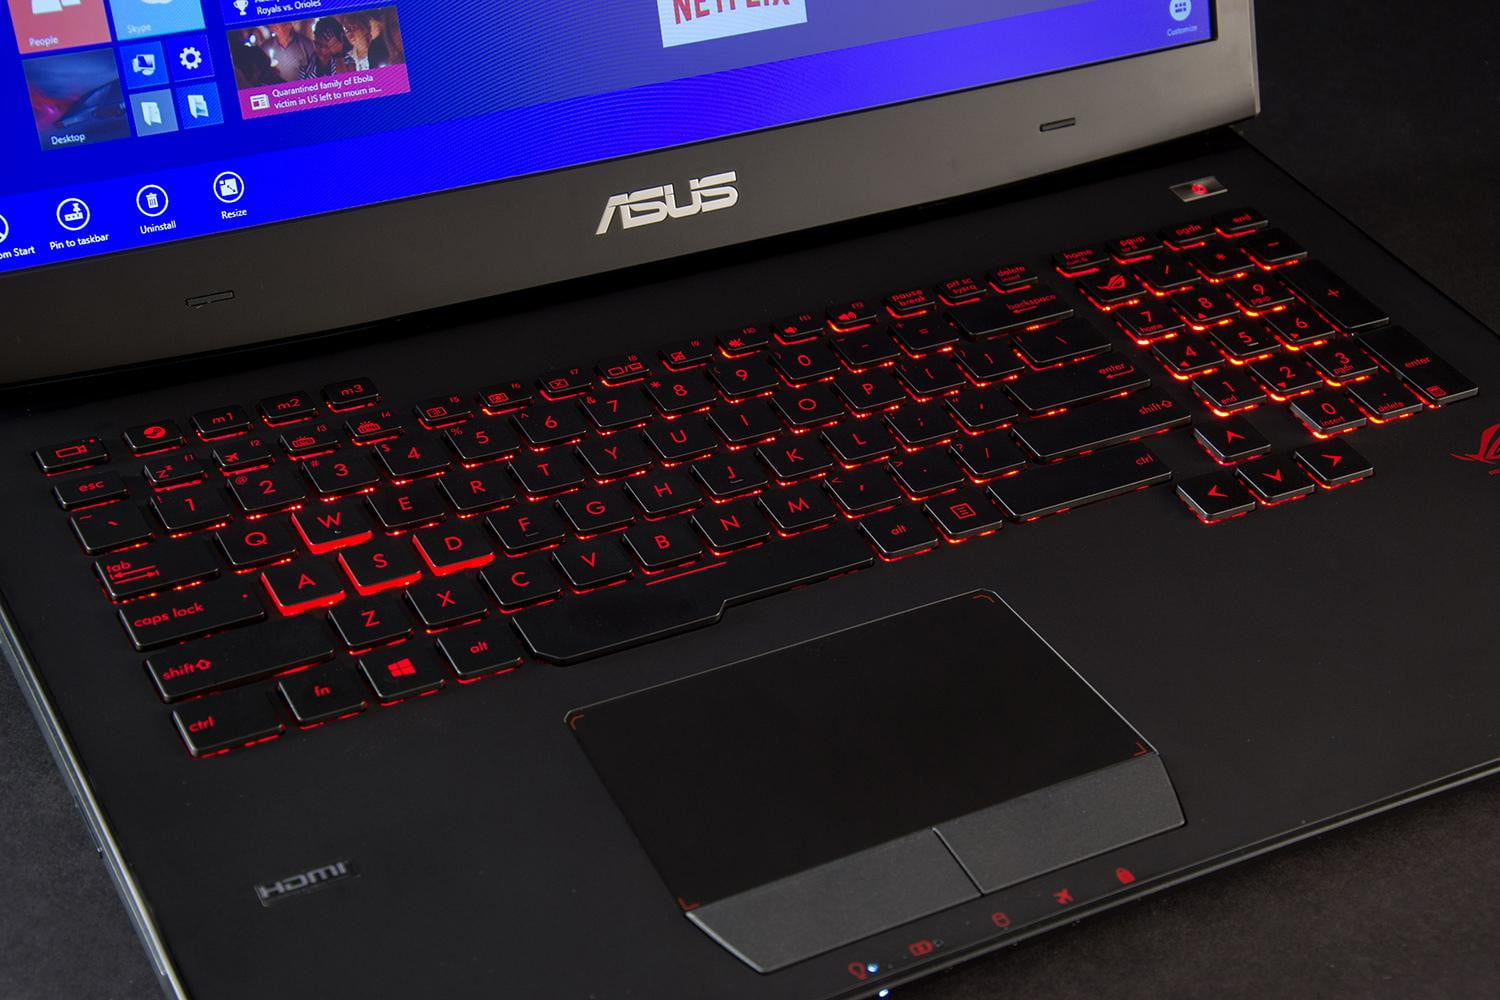 ASUS ROG G751JY Premium Gaming Laptop Review